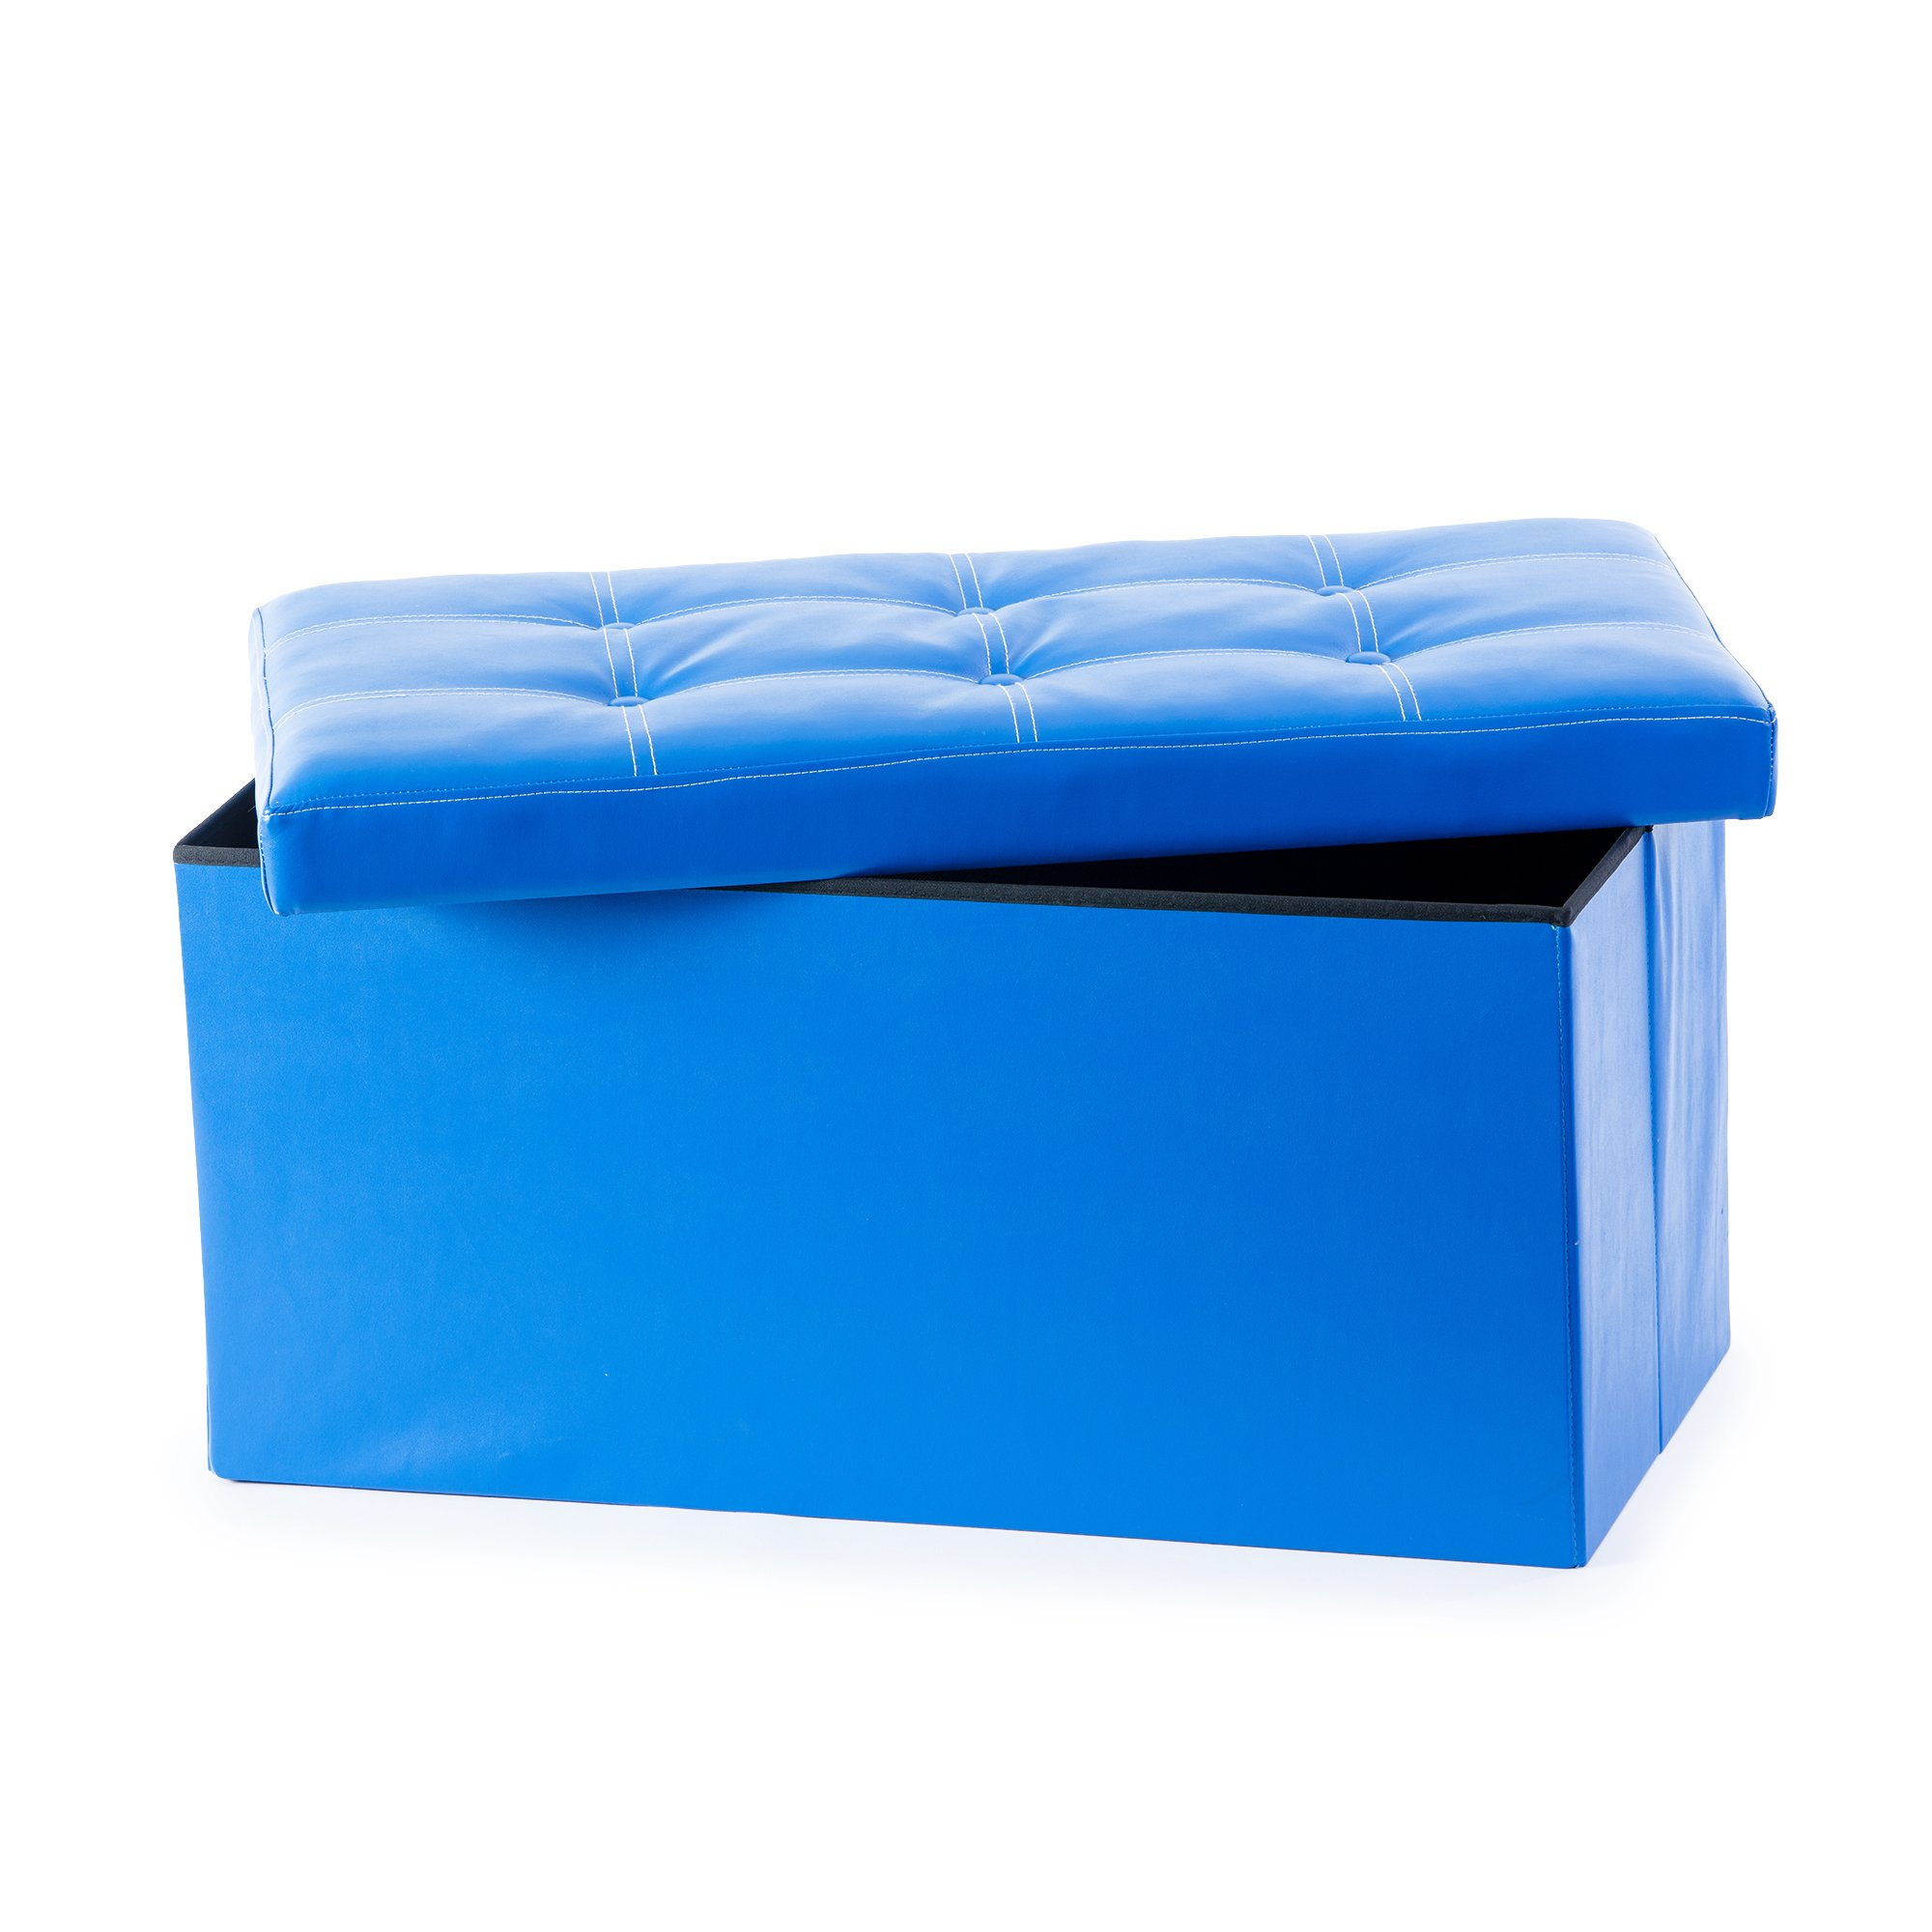 Guidecraft Storage Bench - Blue Ottoman Chest Removable Top Cushion, Kids Seat Foot Rest Stool Toy Box, Children's Furniture